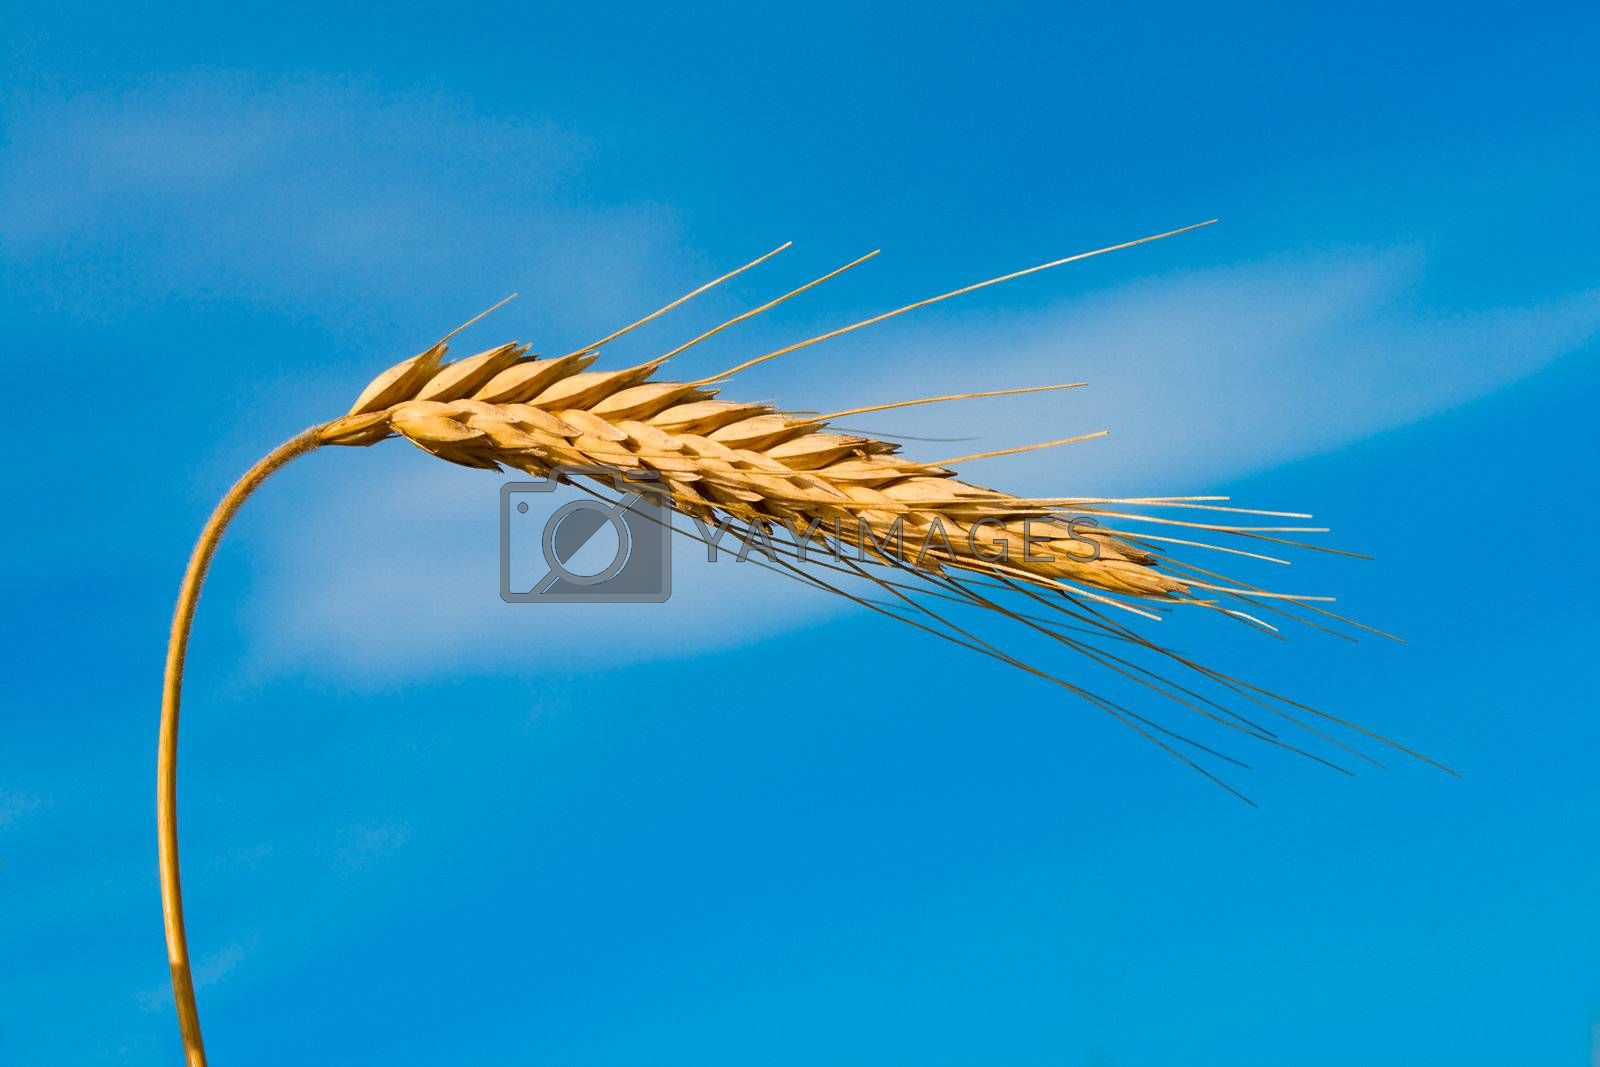 close-up wheat spikelet on blue sky background